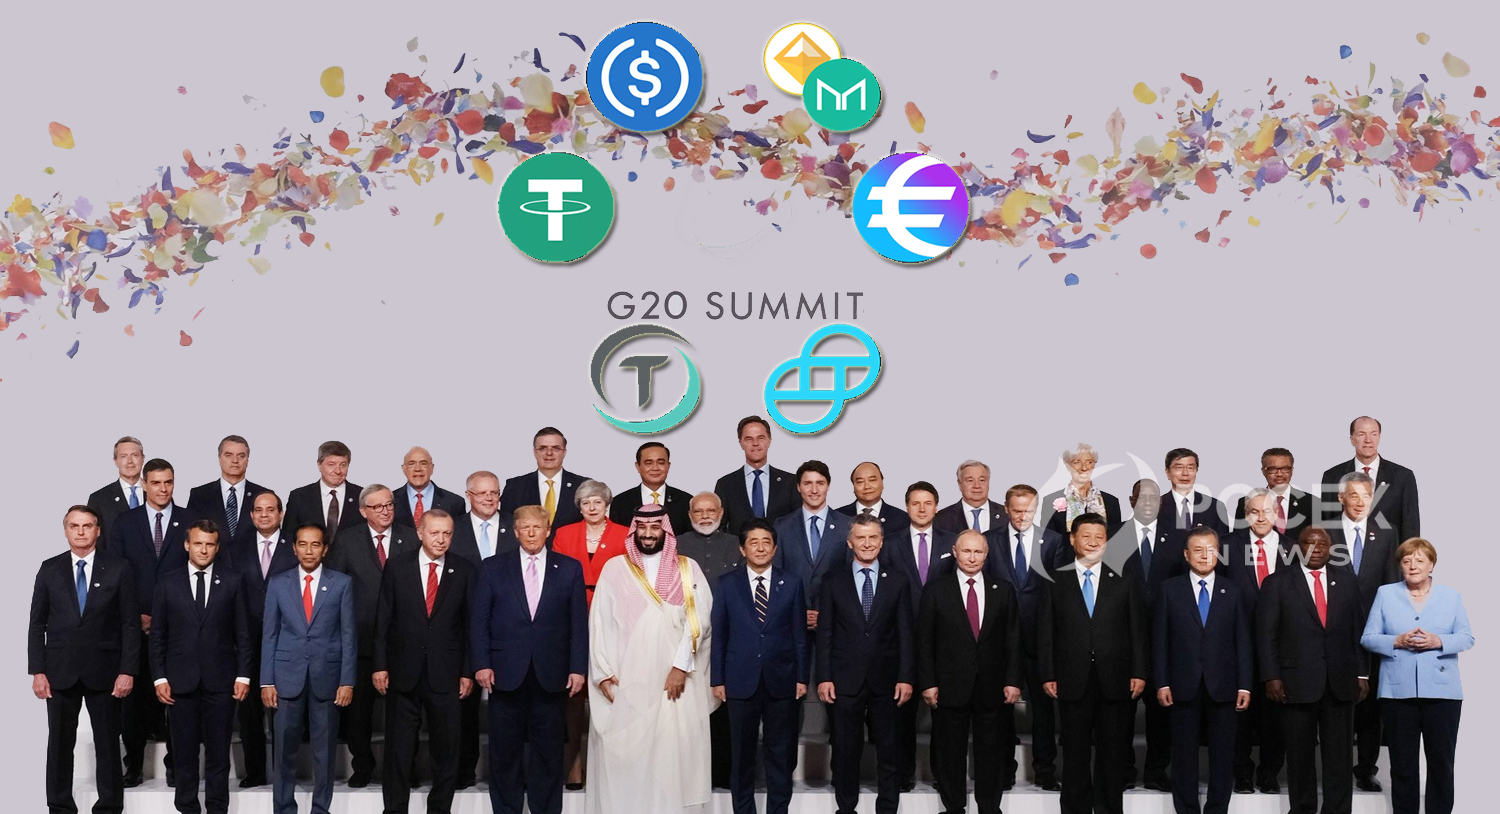 G20 Concerned About Stablecoin